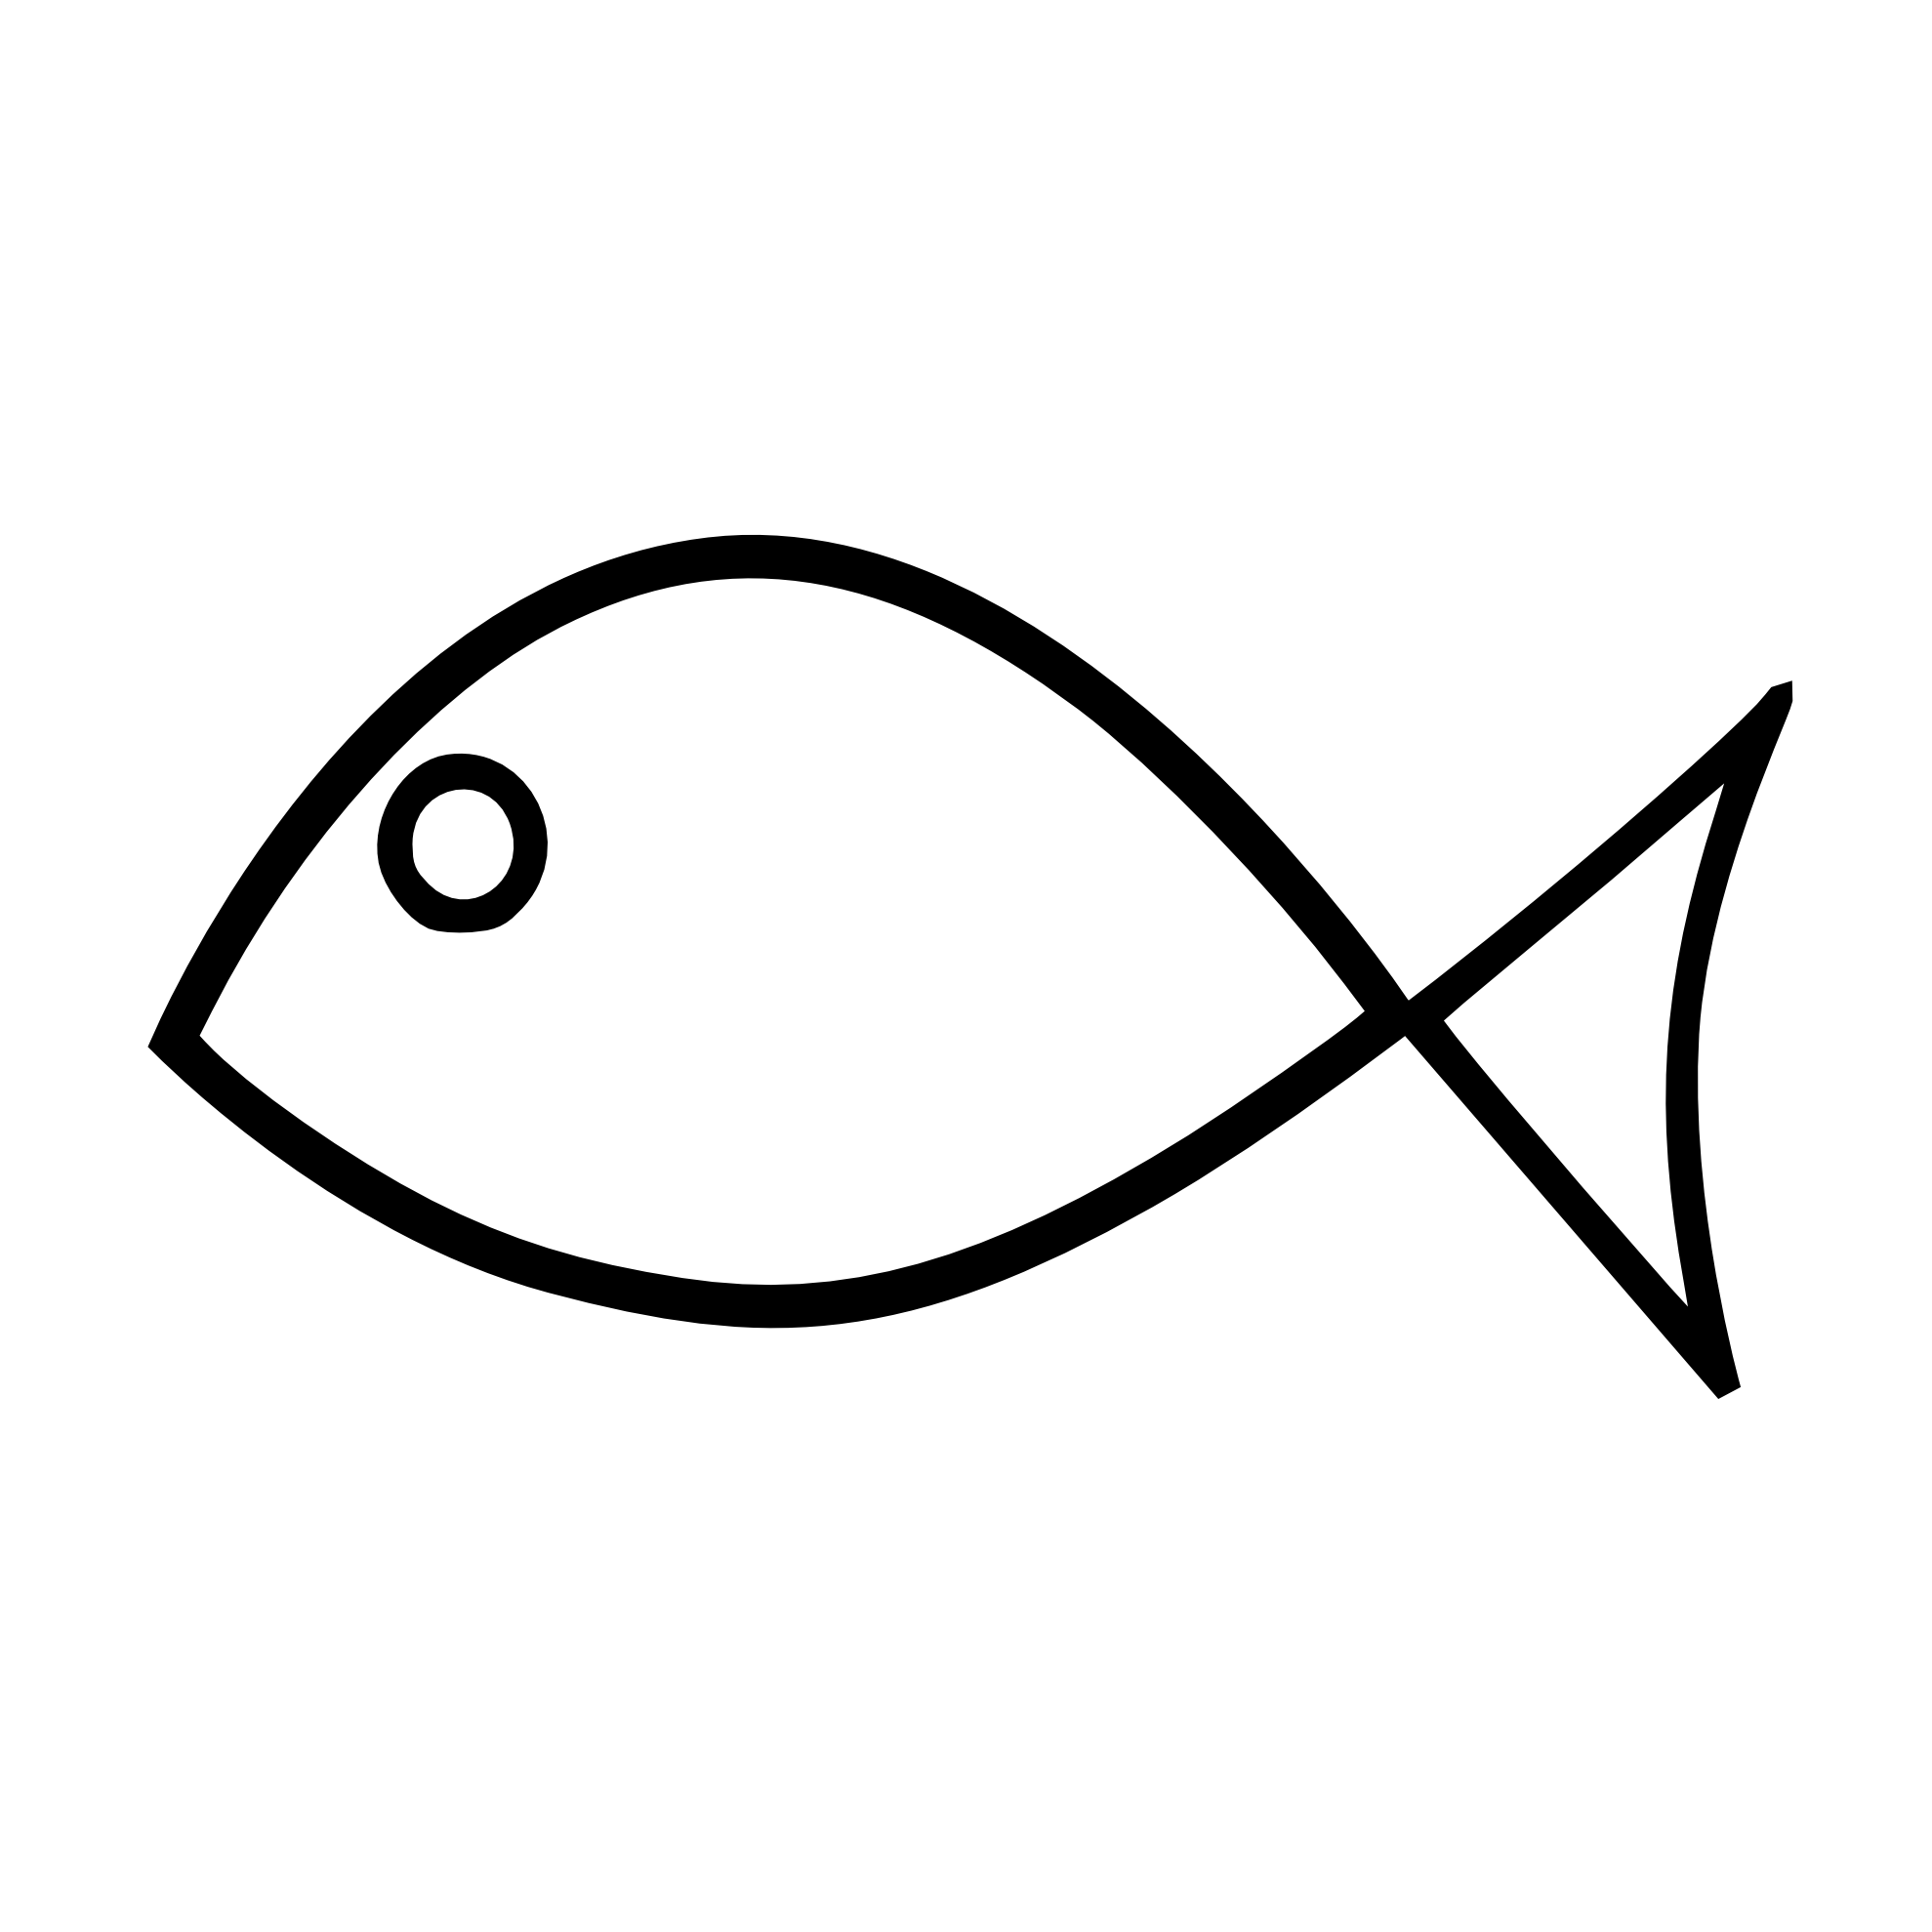 Black And White Fish Images.